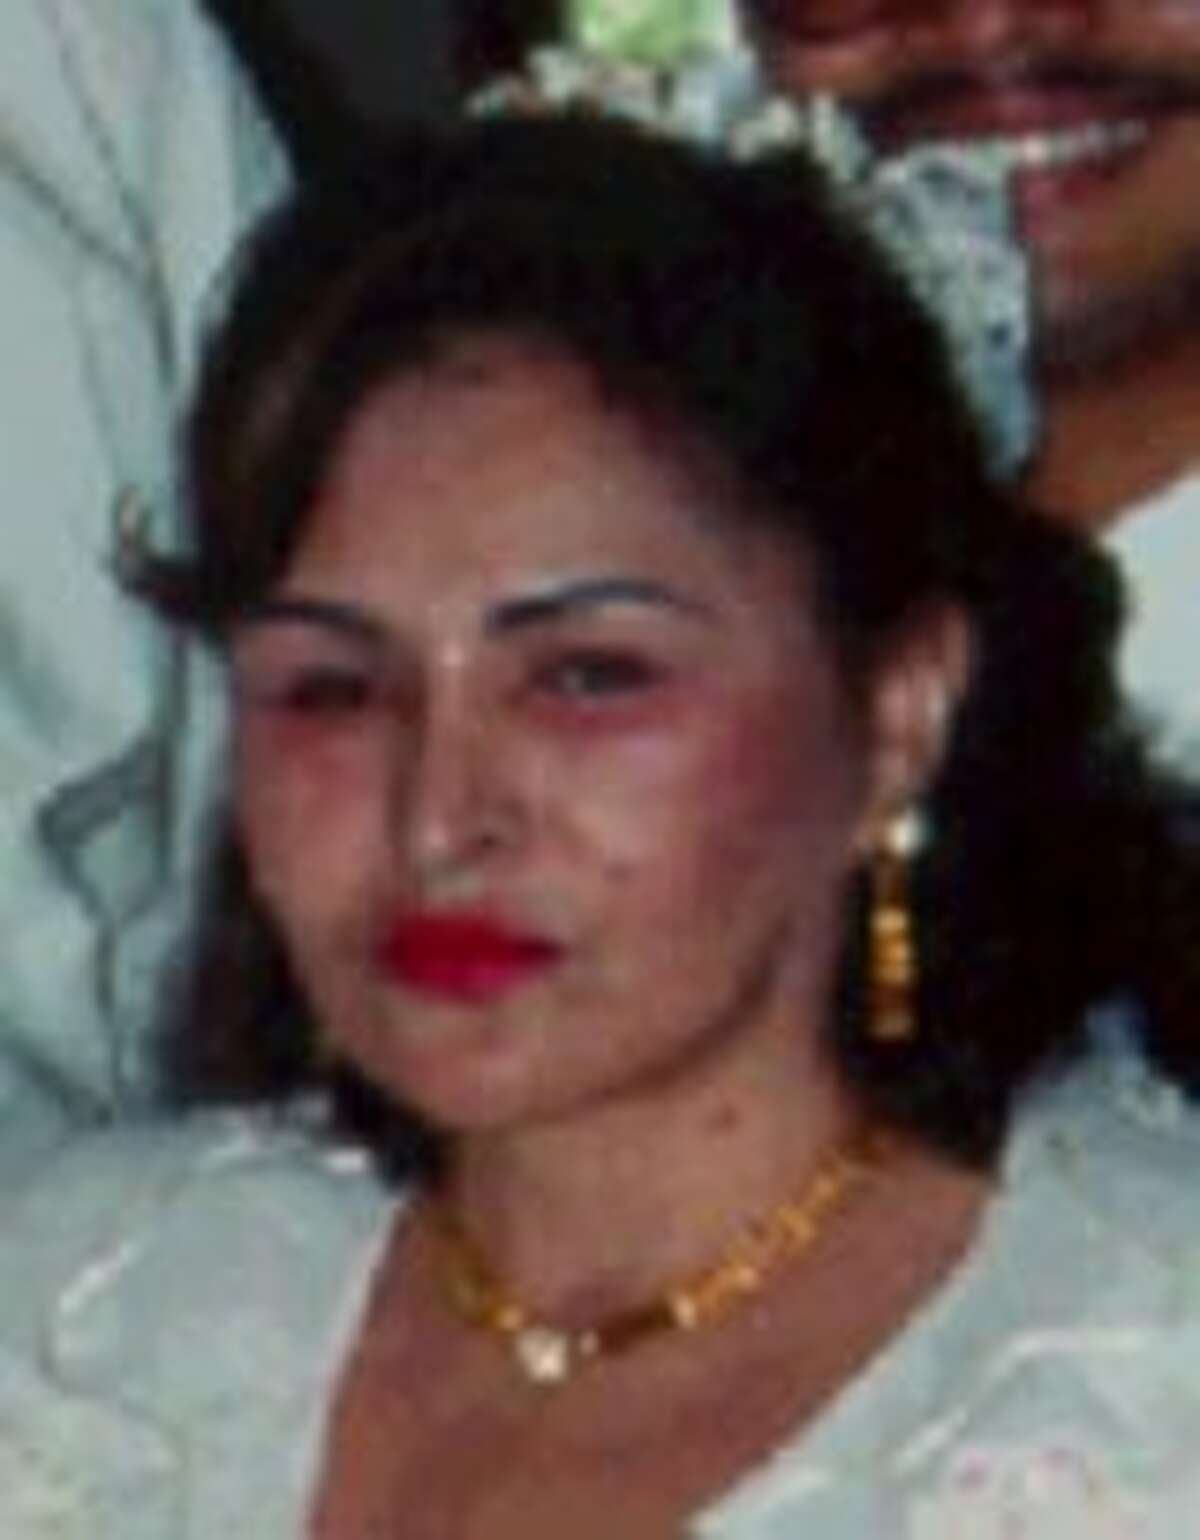 Maria Teresa Osorio de Serna is one of only two members remaining on the DEA's most wanted international fugitives list after the capture of drug loard Joaquin